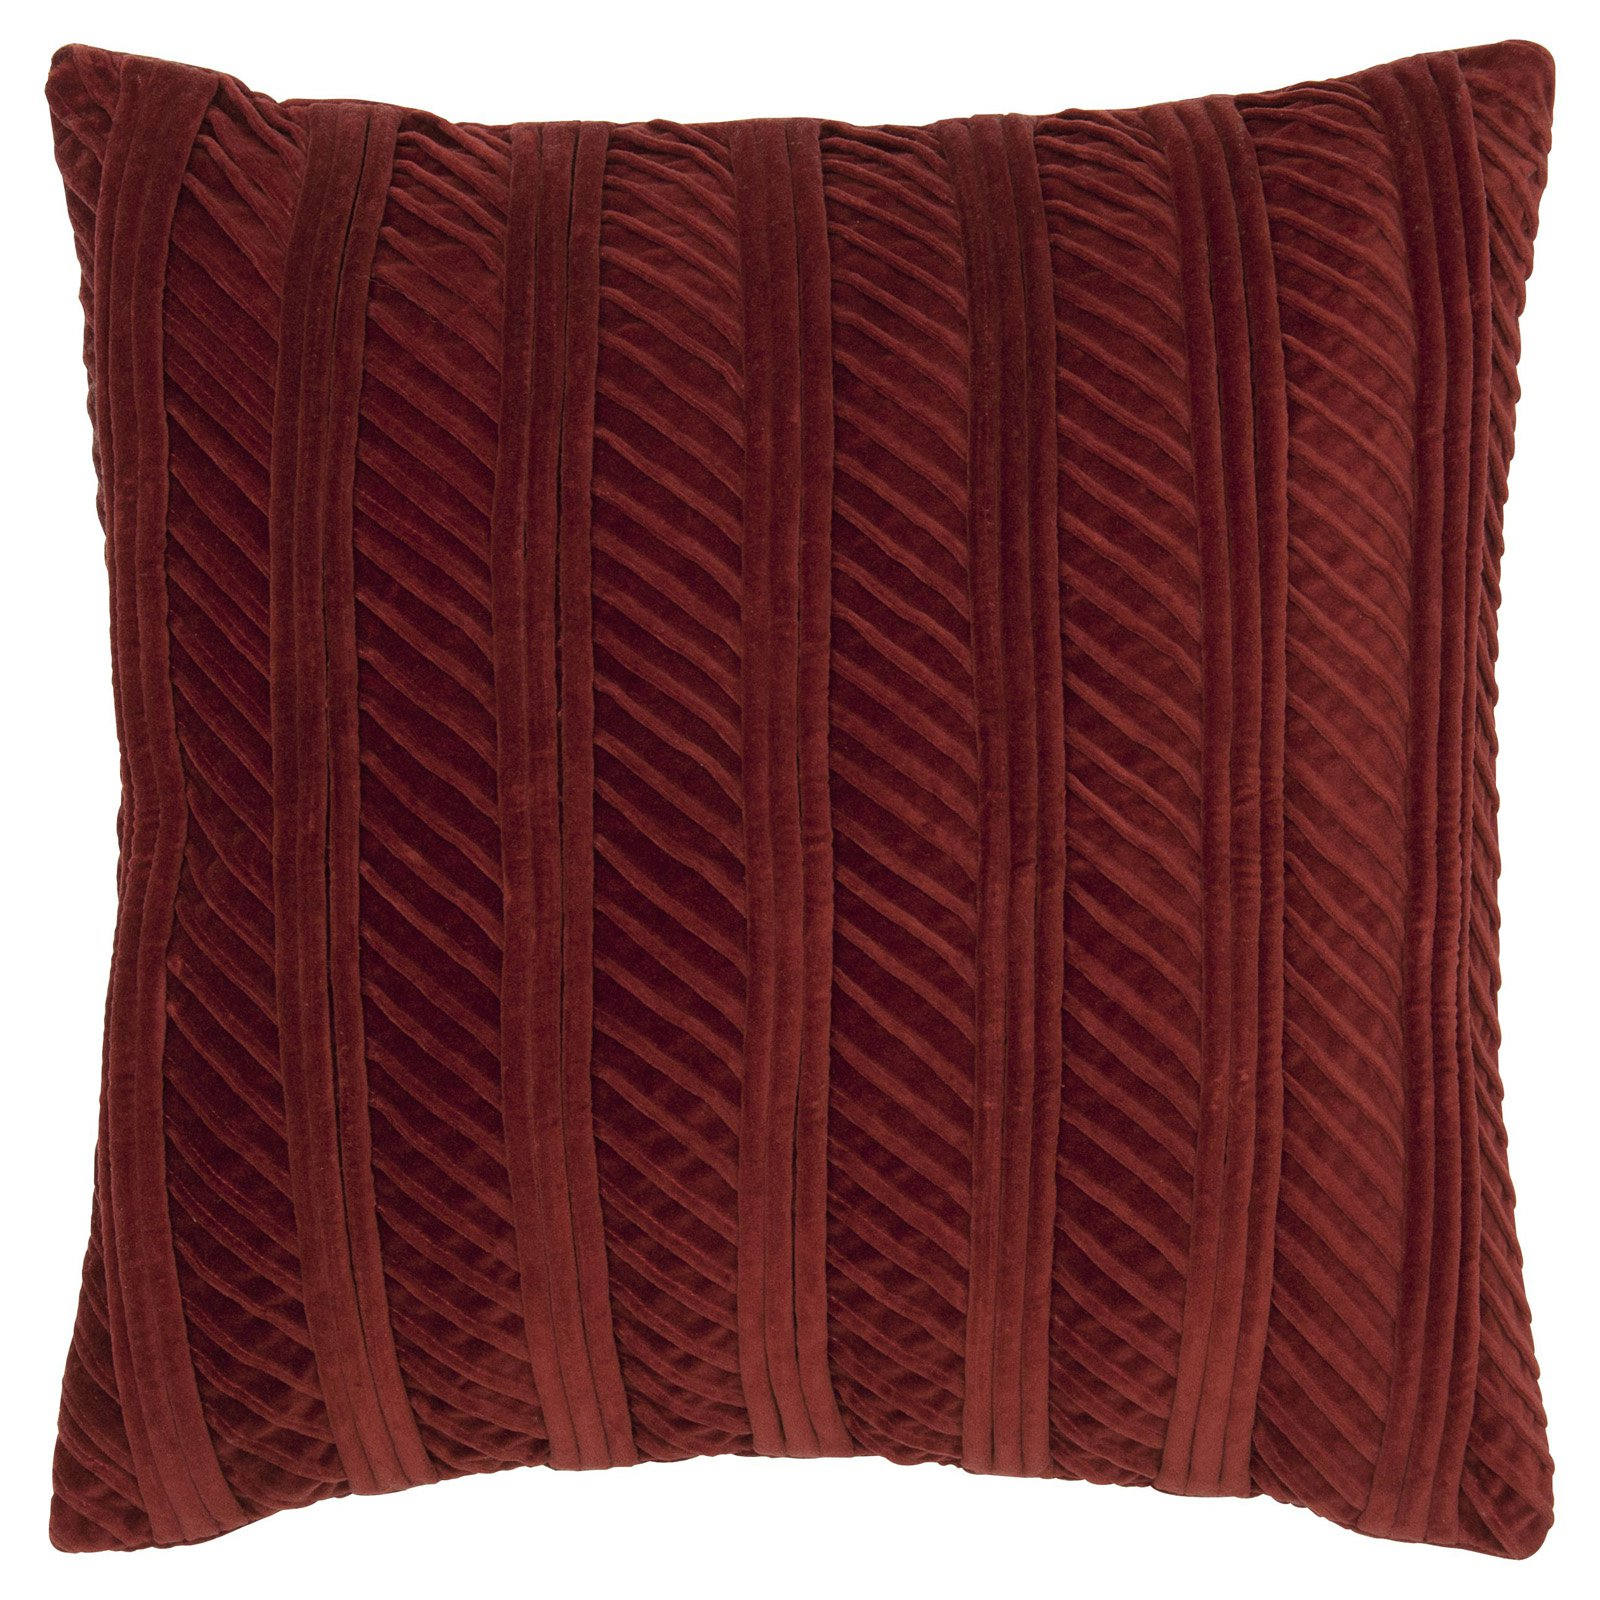 Rizzy Home Cotton Velvet Corded Decorative Throw Pillow